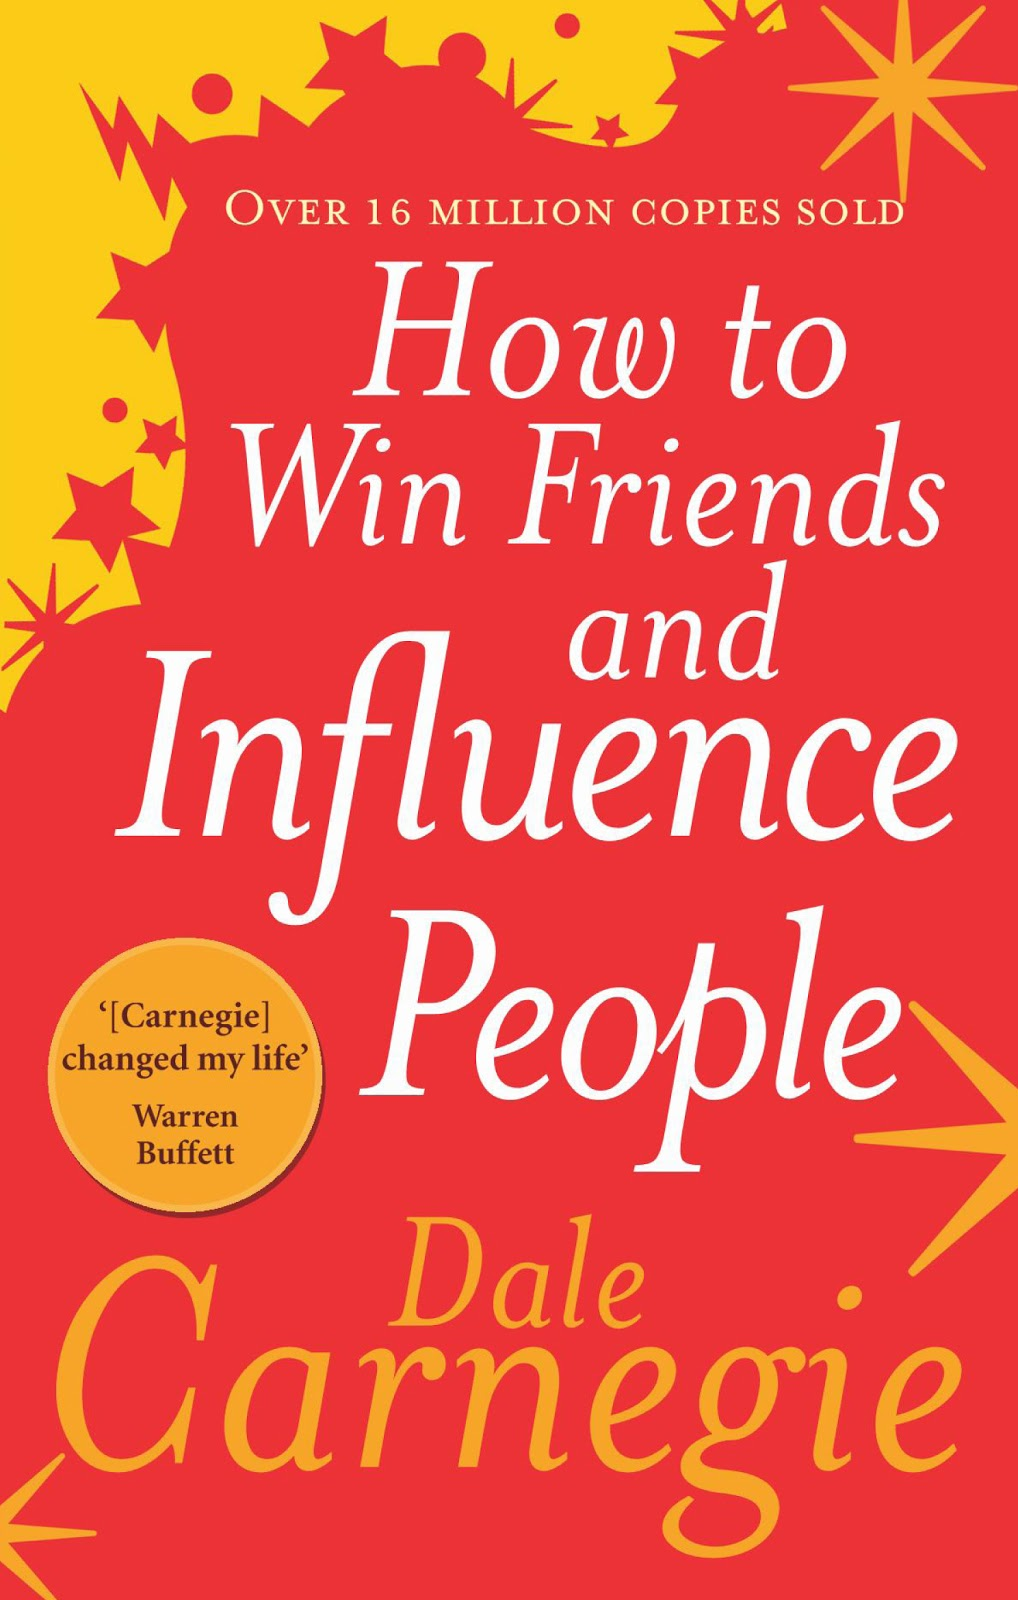 Business audio books free #13: How to Win Friends and Influence People